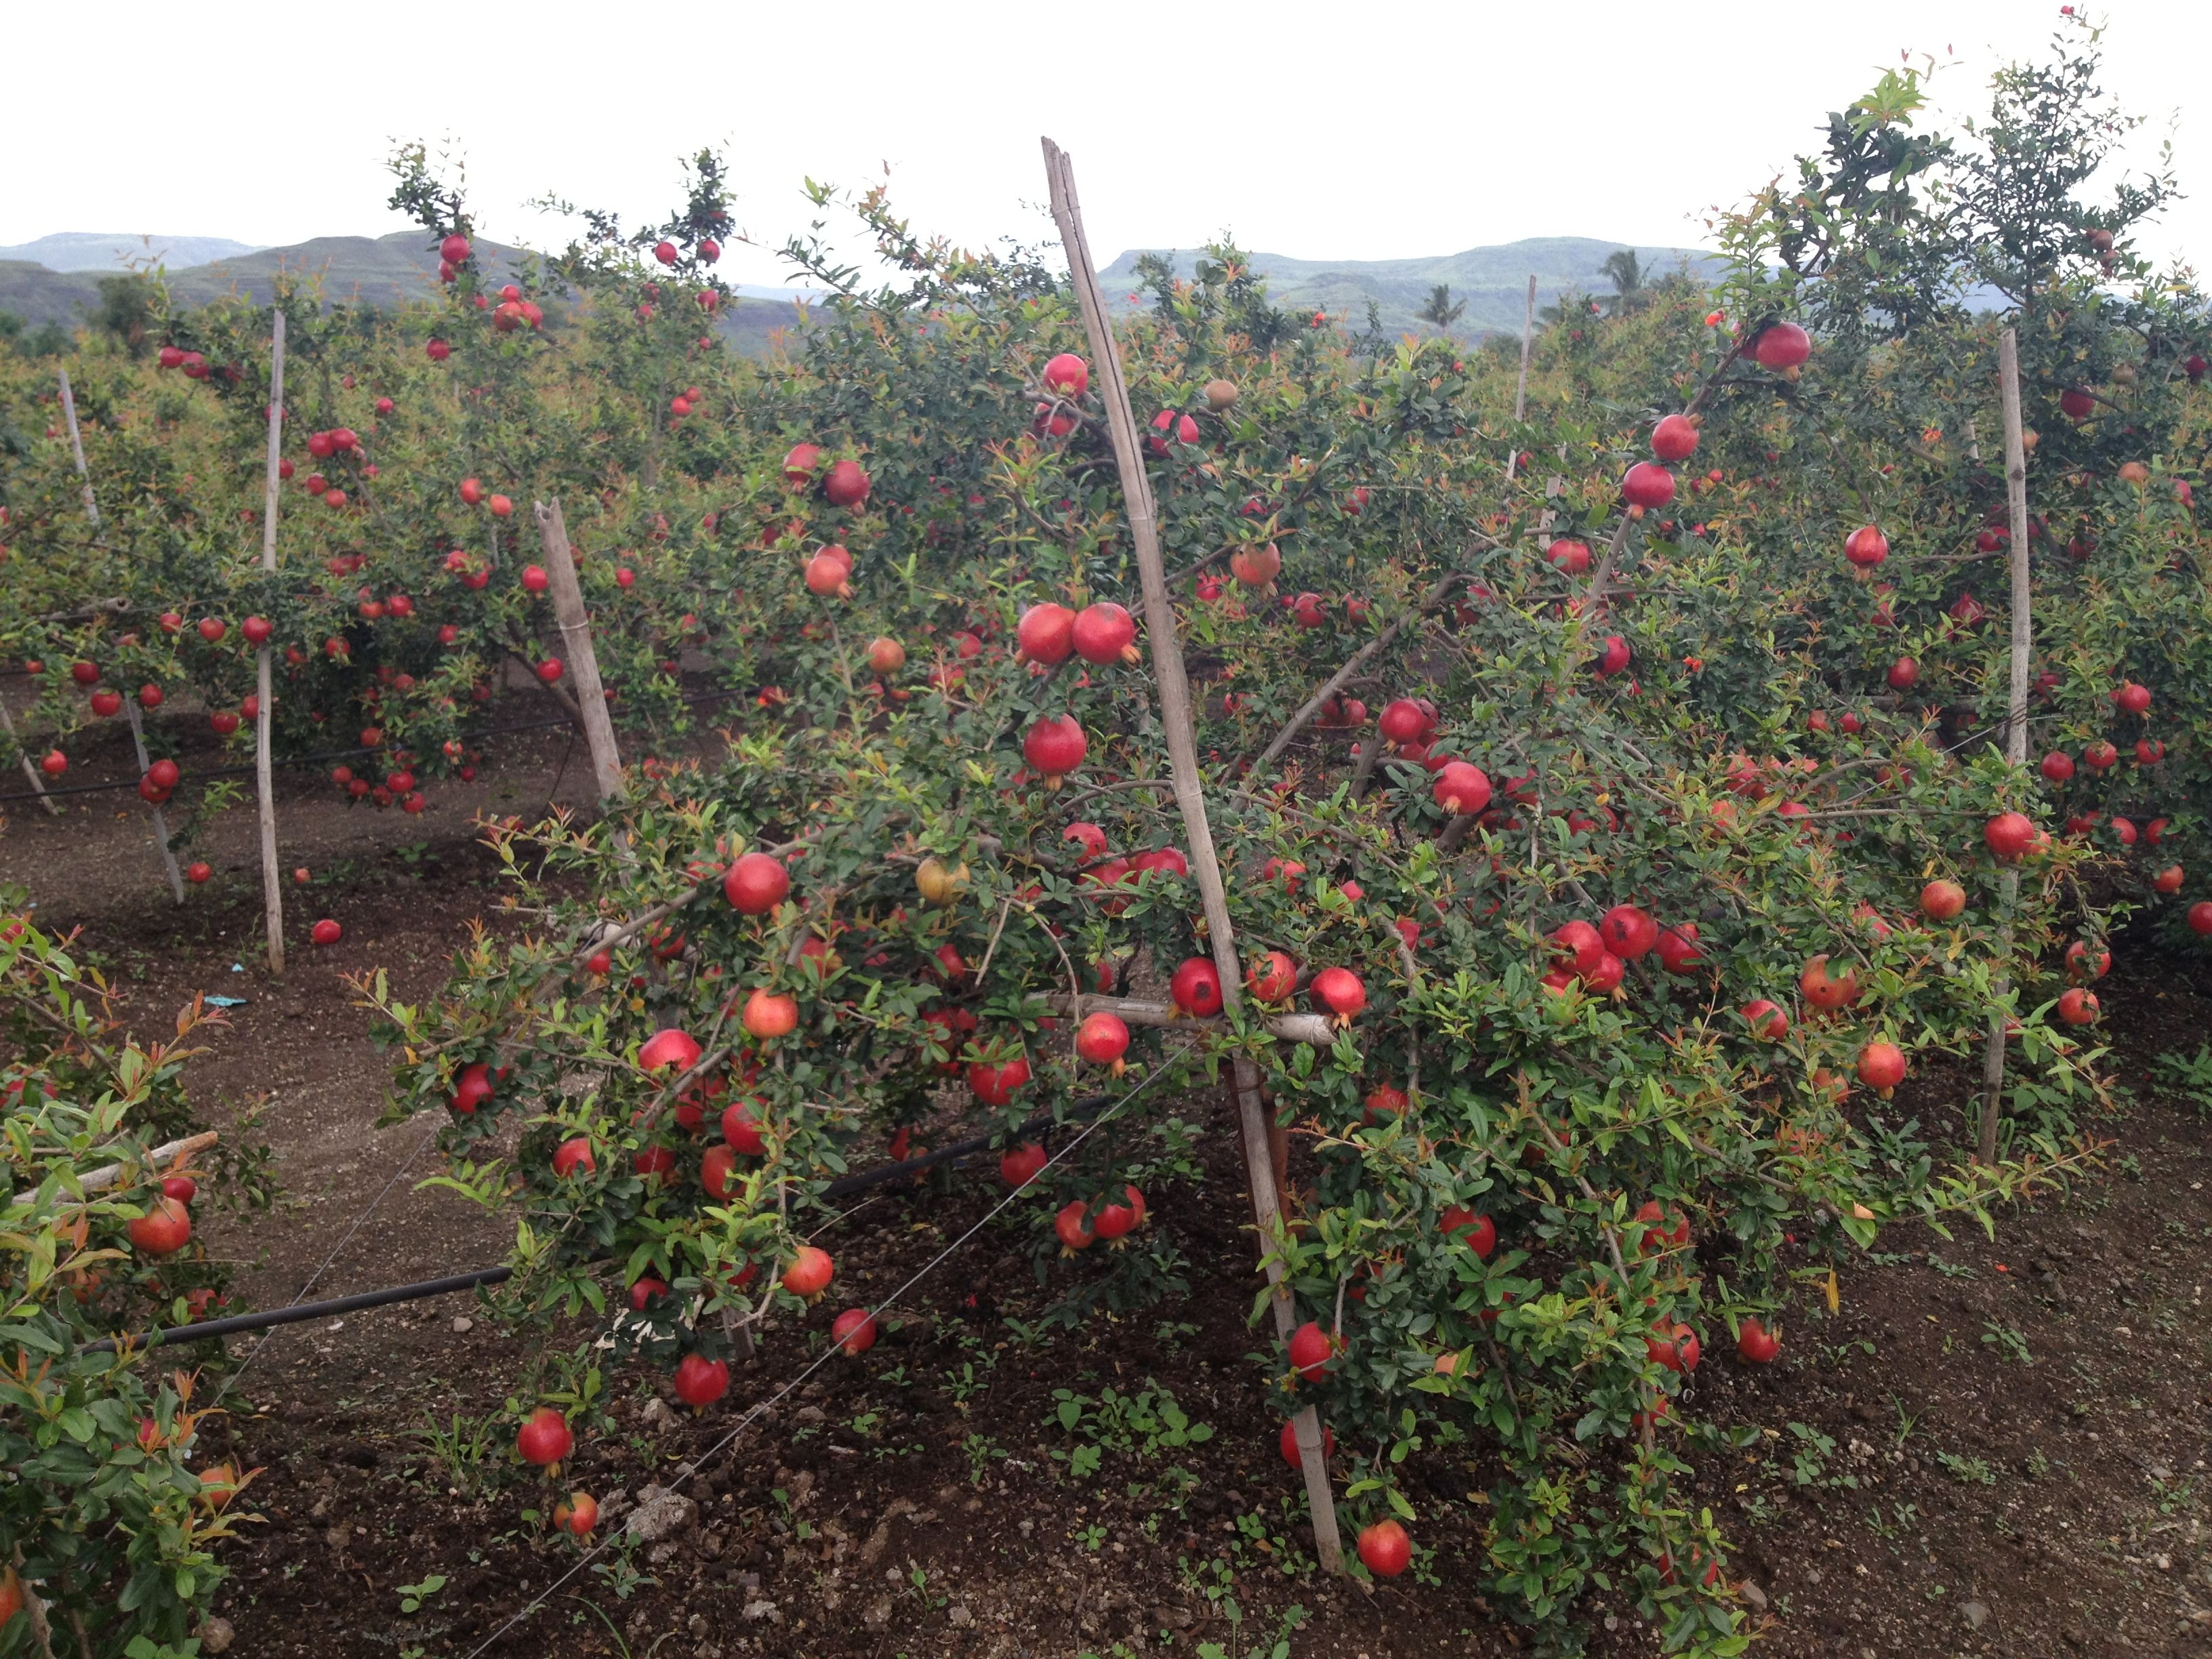 This is our pomegranate farm in Nashik, near Maharashtra